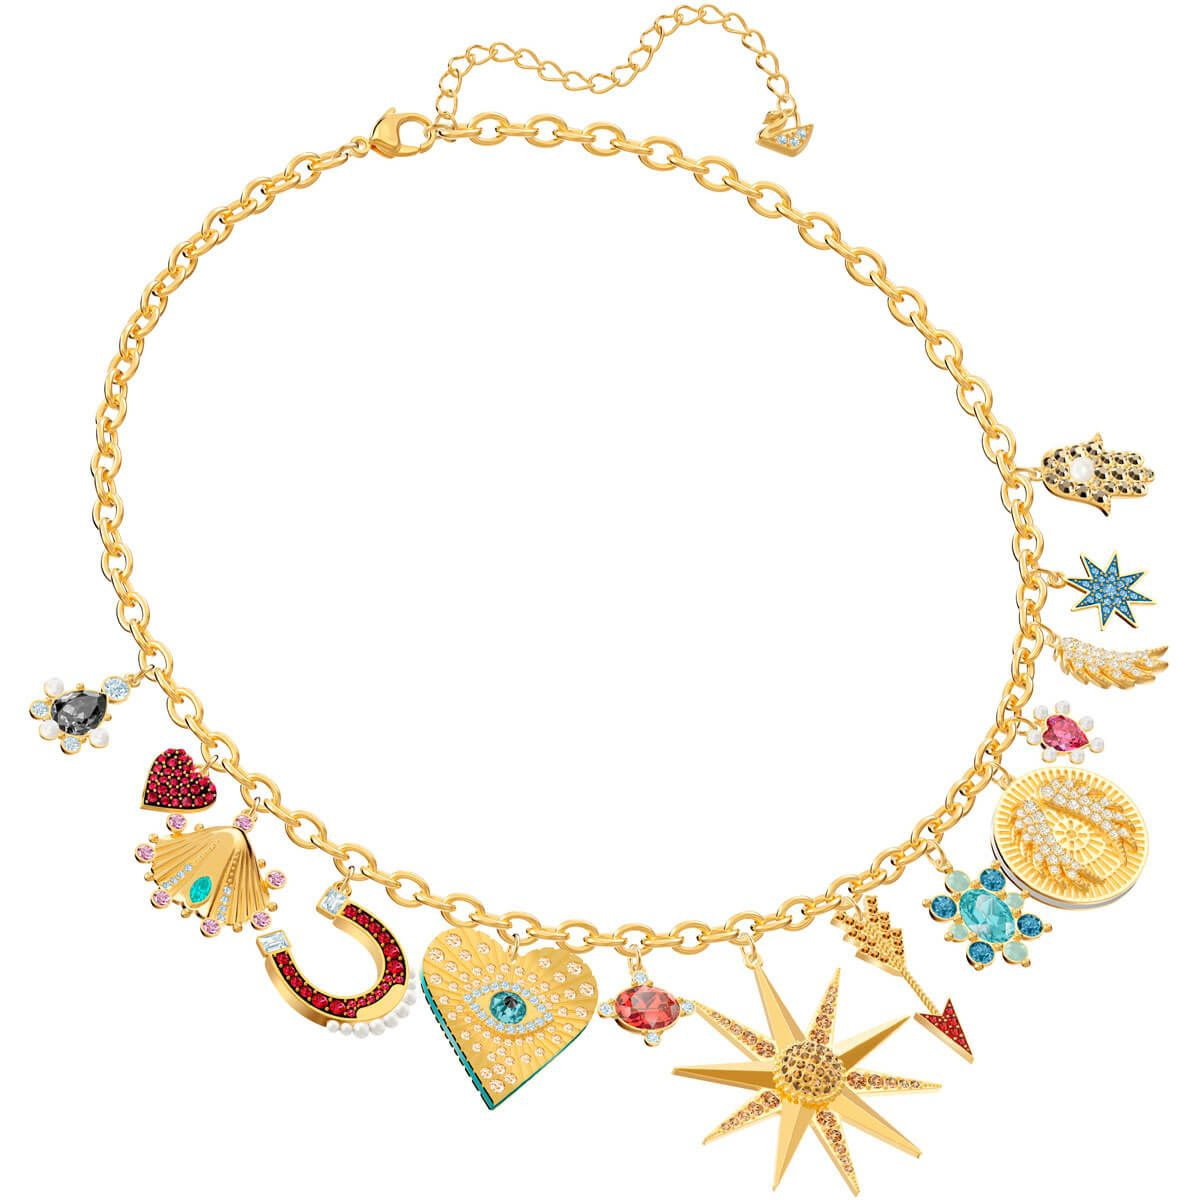 12d05f65de5a0d Lucky Goddess Charms Necklace, Multi-colored, Gold plating exclusively on  Swarovski.com